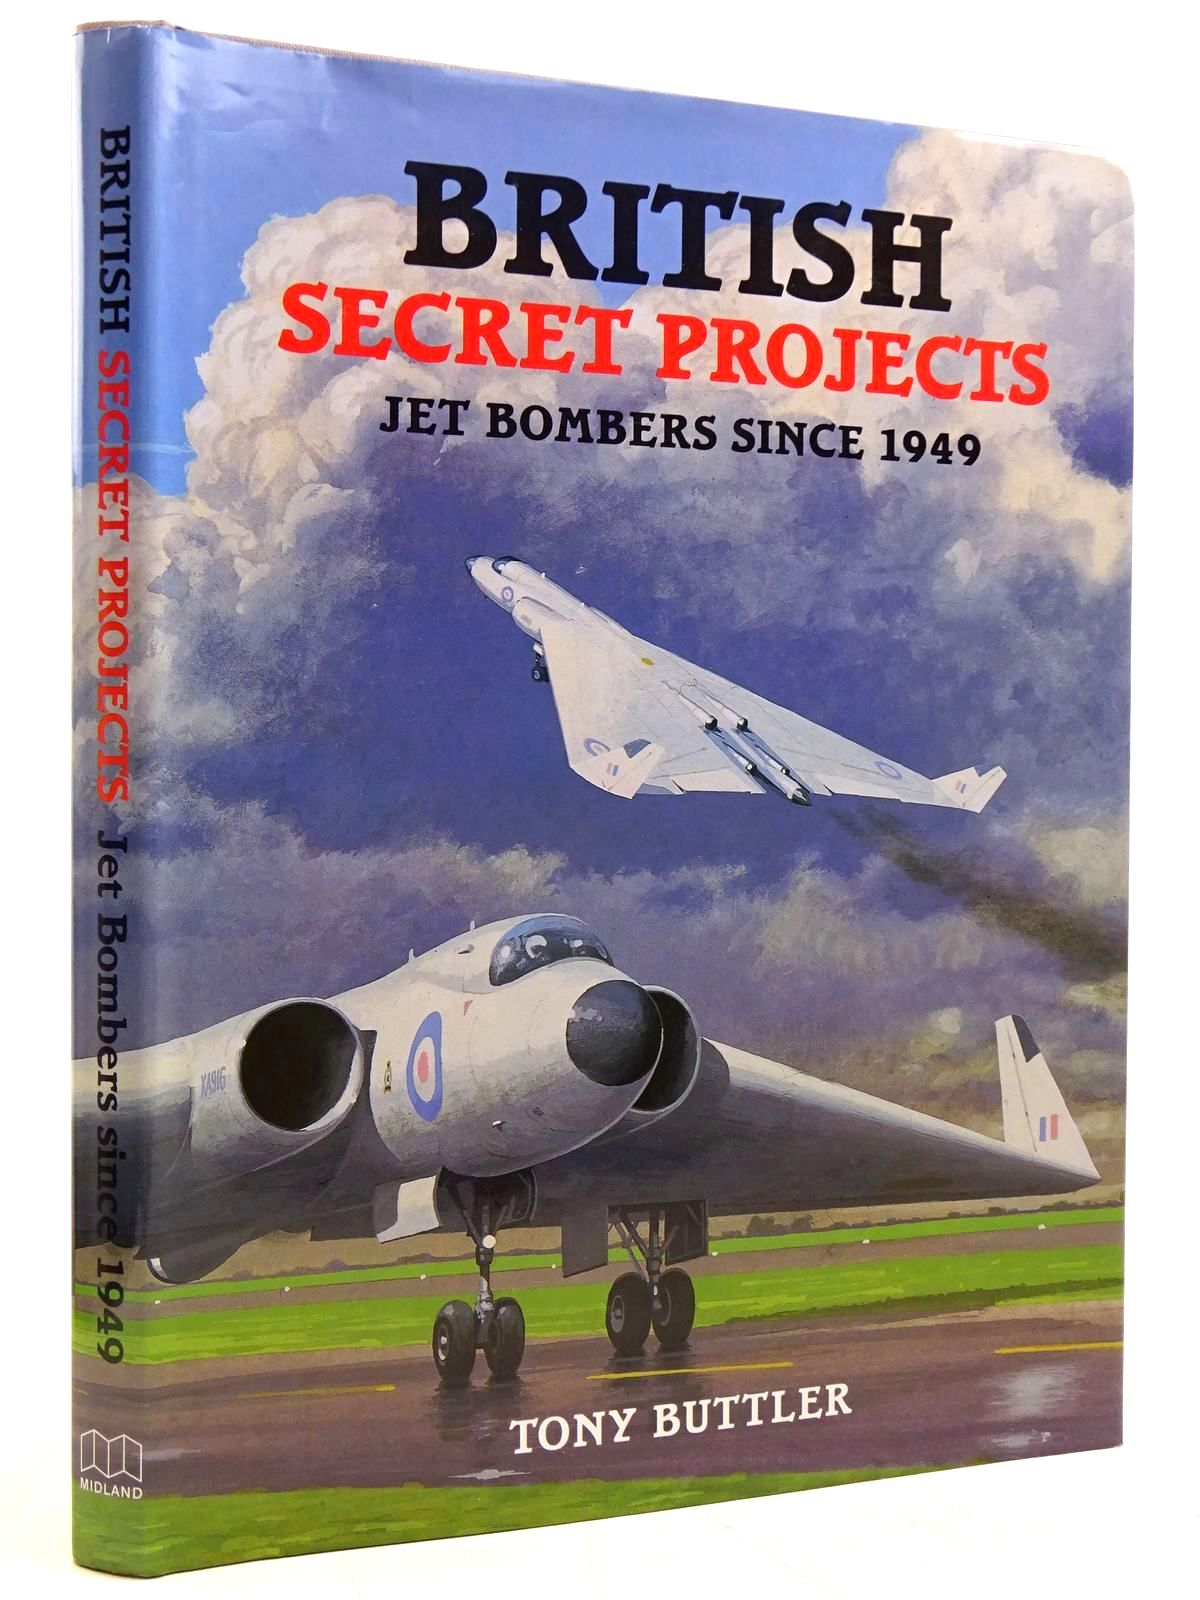 Photo of BRITISH SECRET PROJECTS: JET BOMBER SINCE 1949 written by Buttler, Tony published by Midland Publishing (STOCK CODE: 2131438)  for sale by Stella & Rose's Books